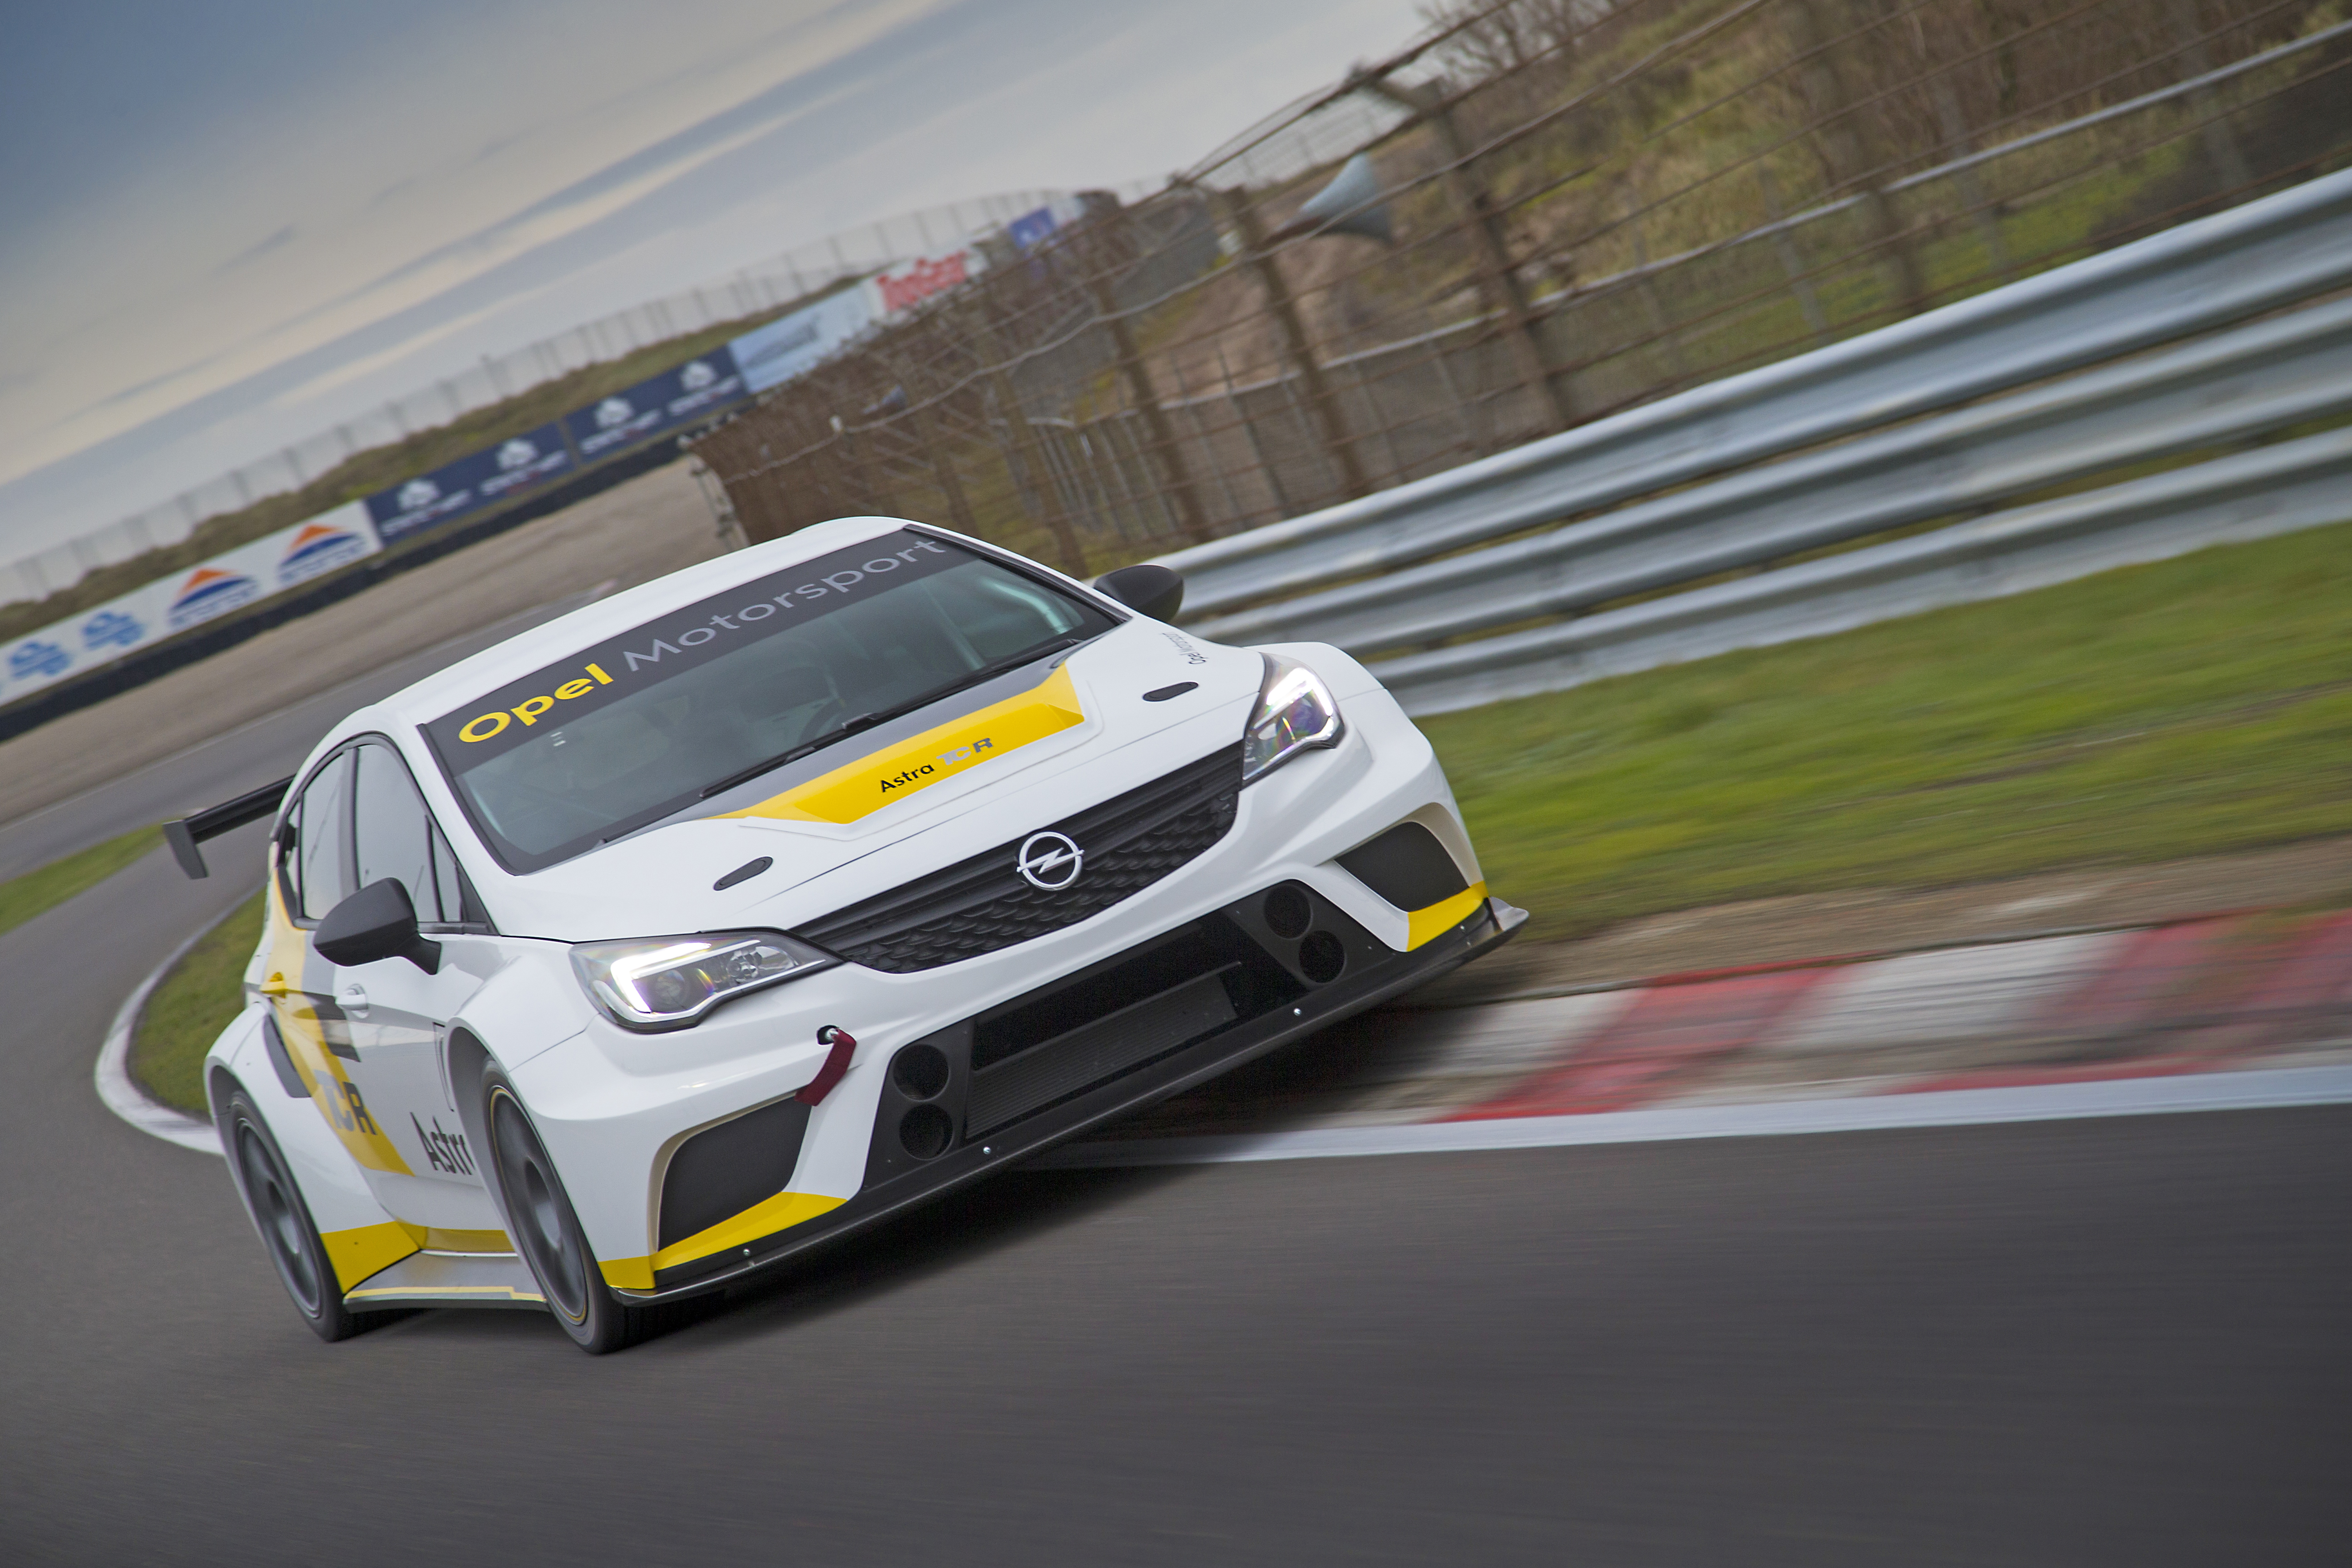 Opel-Astra-TCR-299181